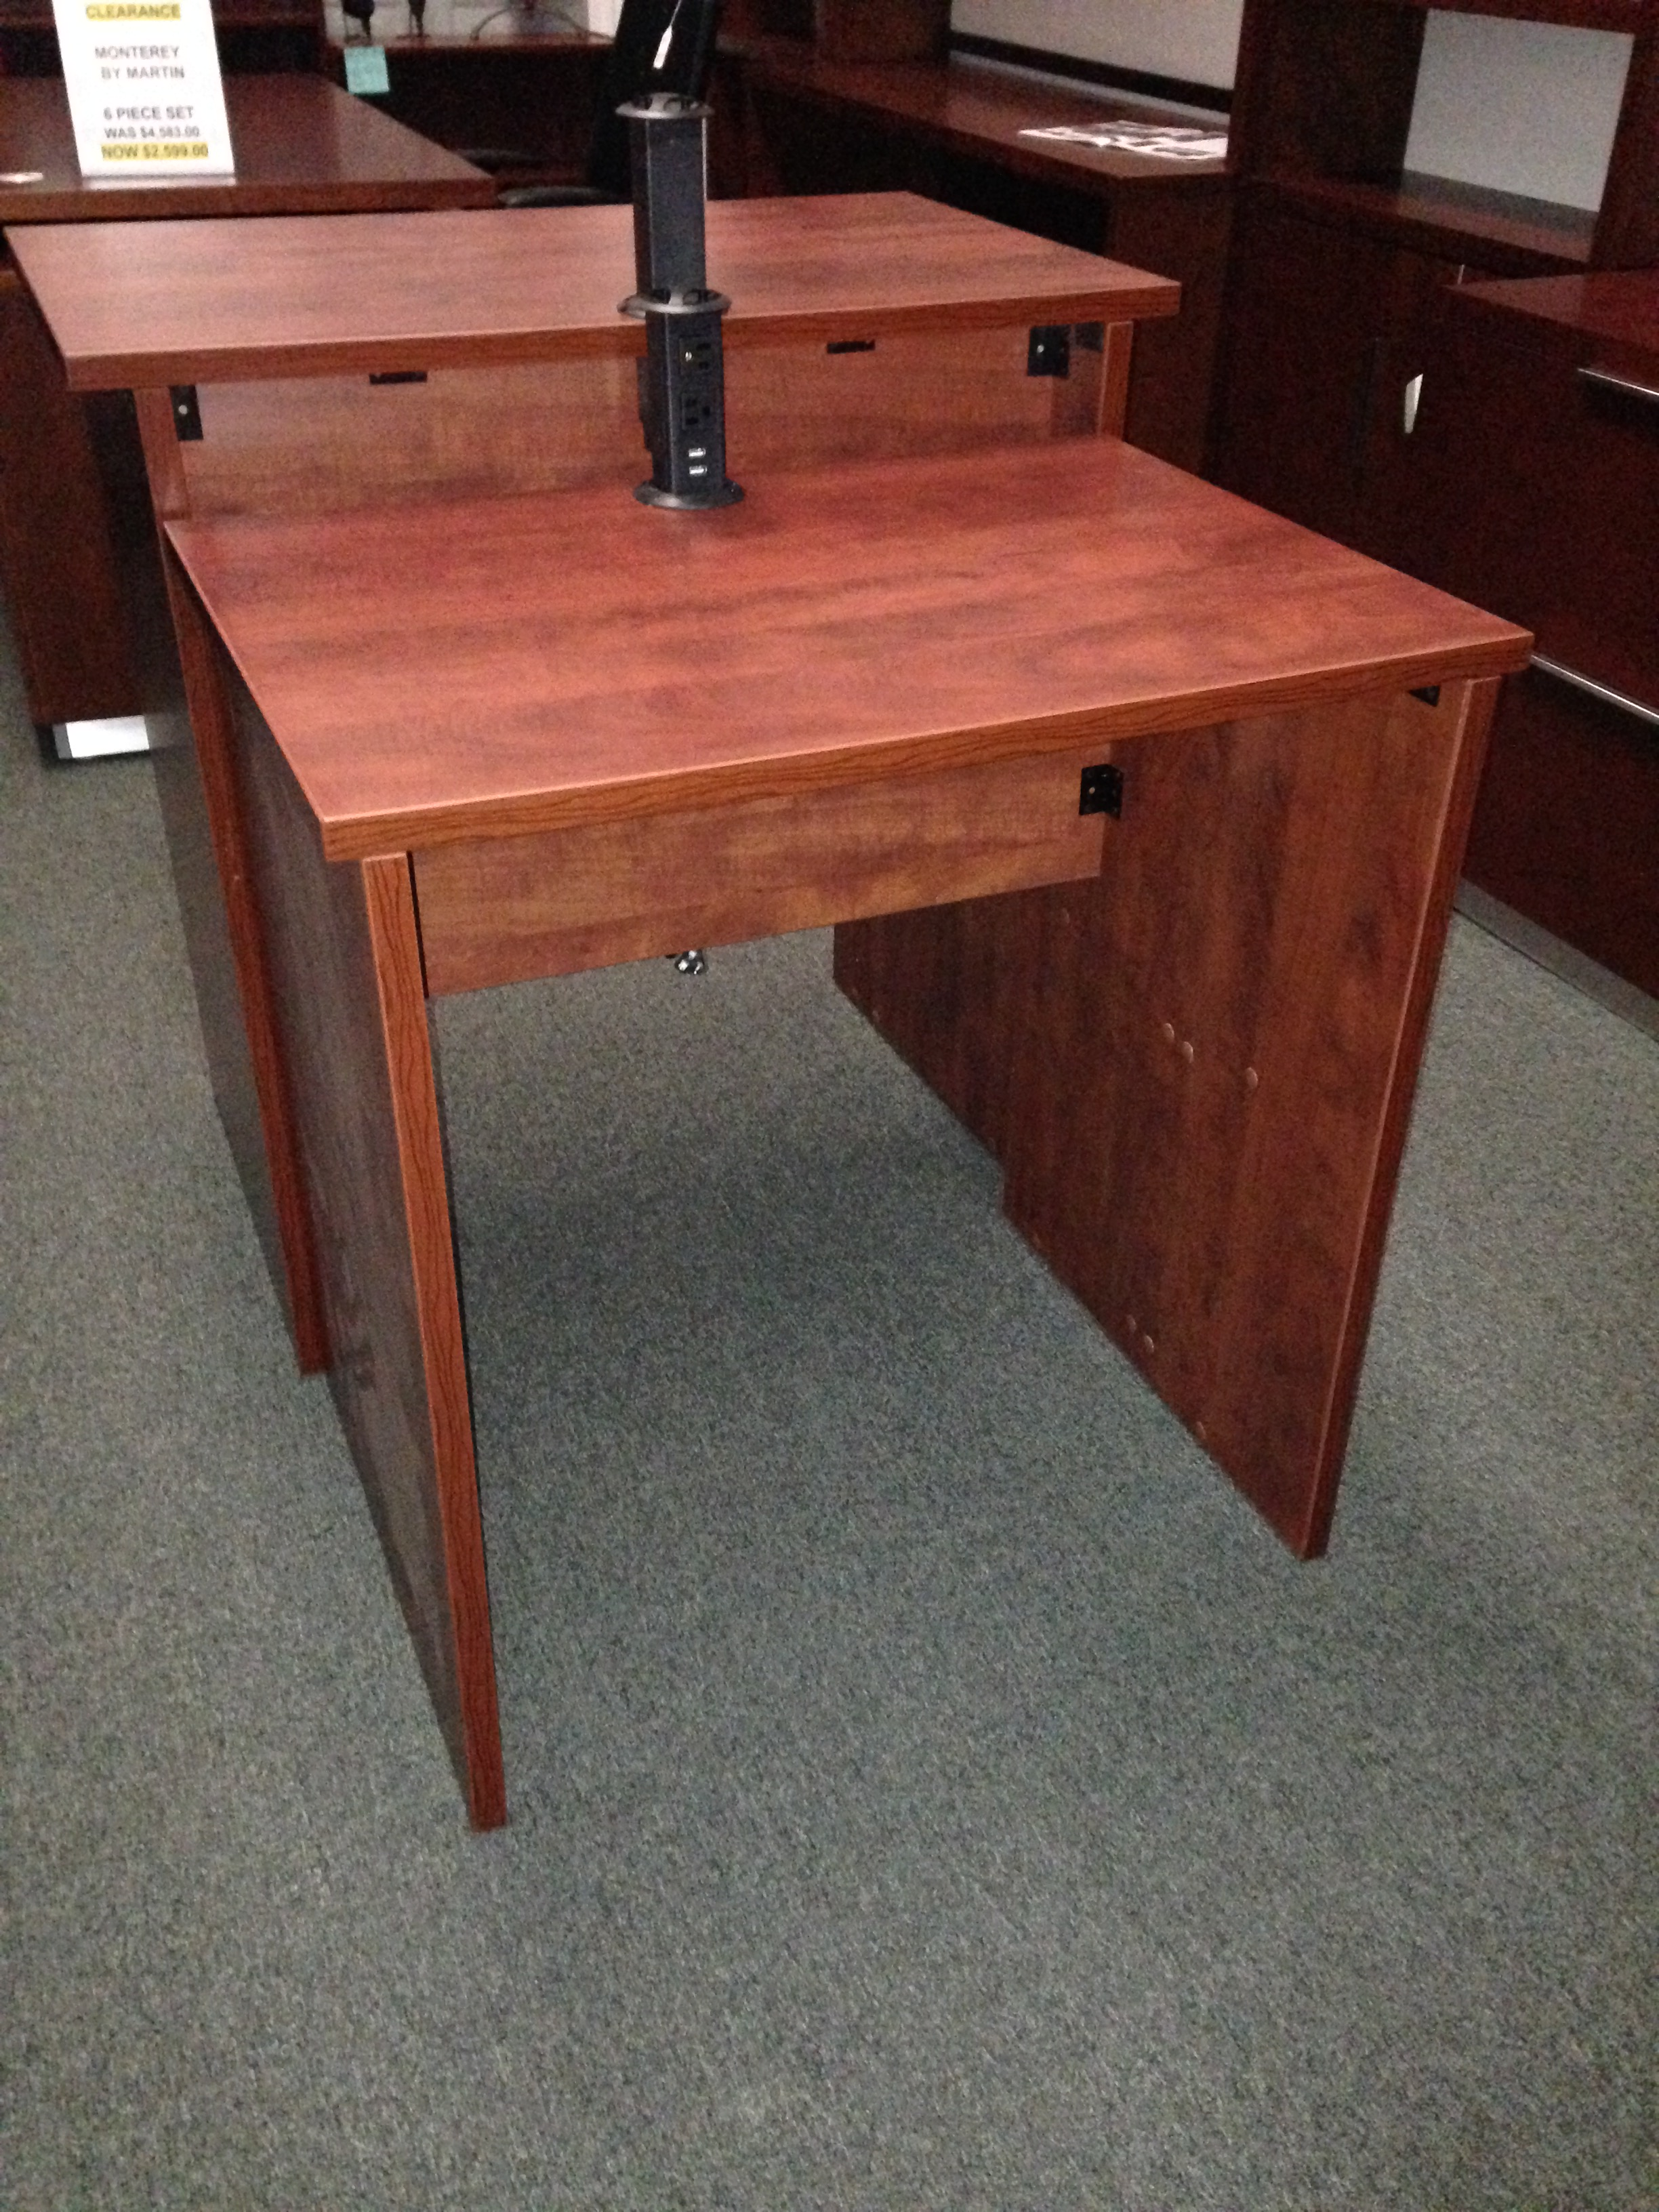 Stand Up Desk With Charge And Connect Pop Port